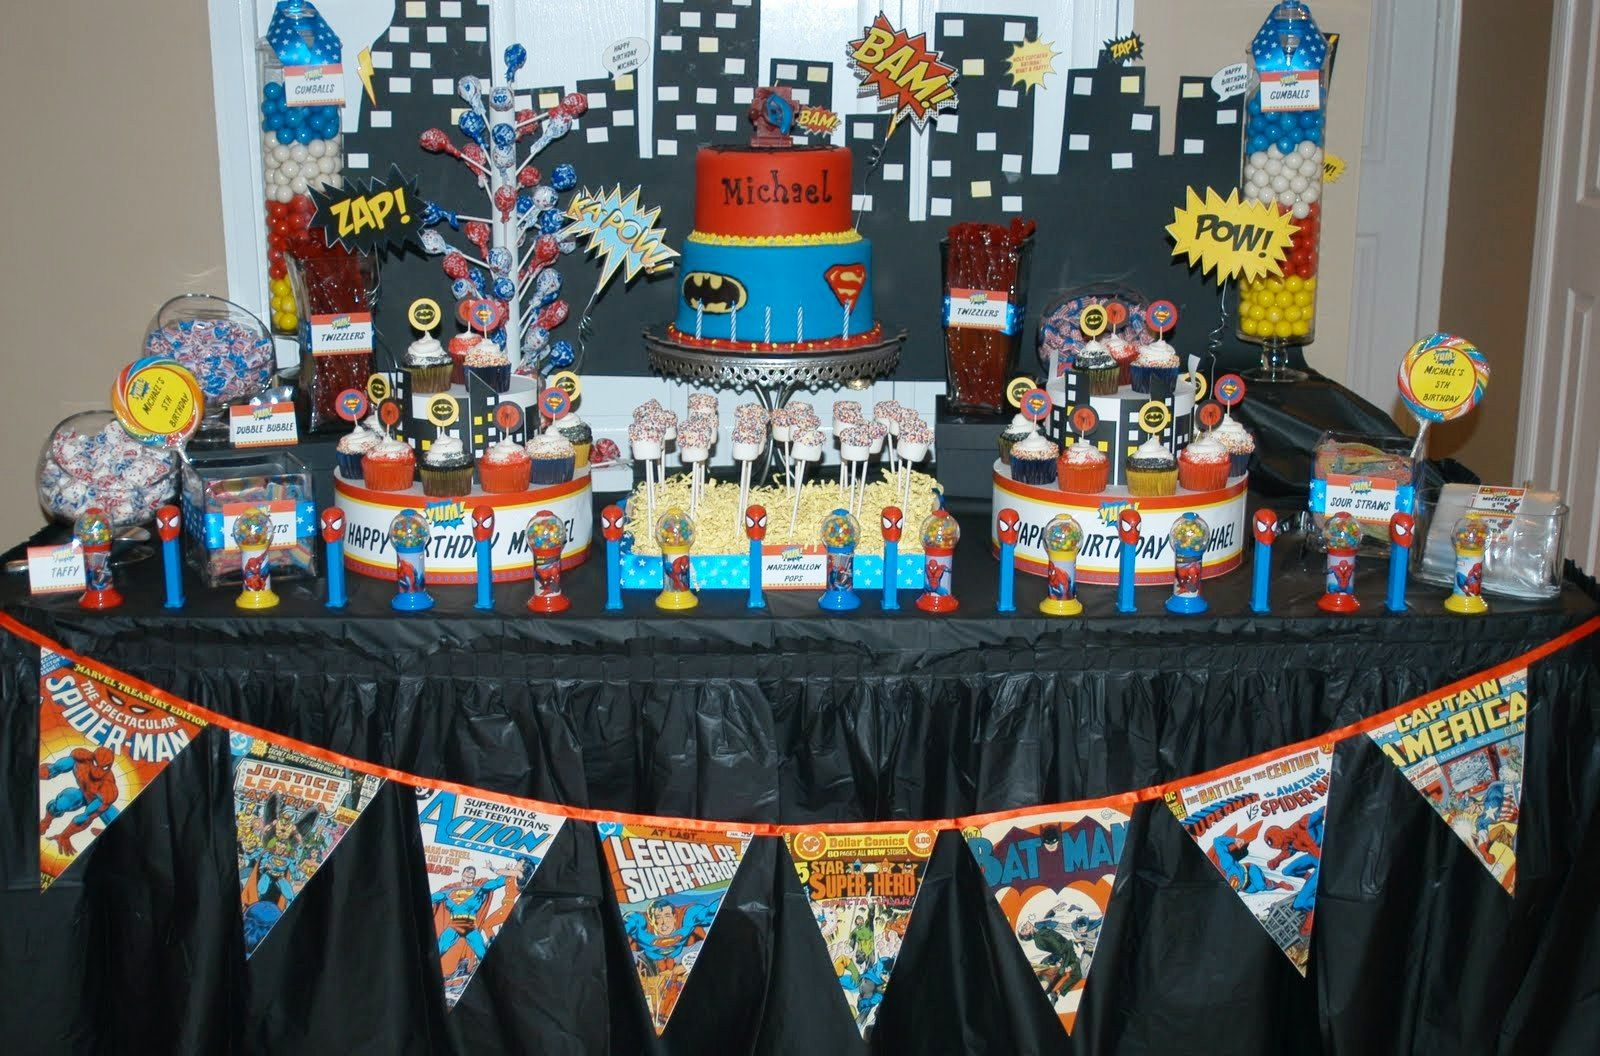 This Photo About Superhero Party Decorations For Children S Birthday Party Entitled A Marvel Birthday Party Superhero Party Decorations Superhero Decorations